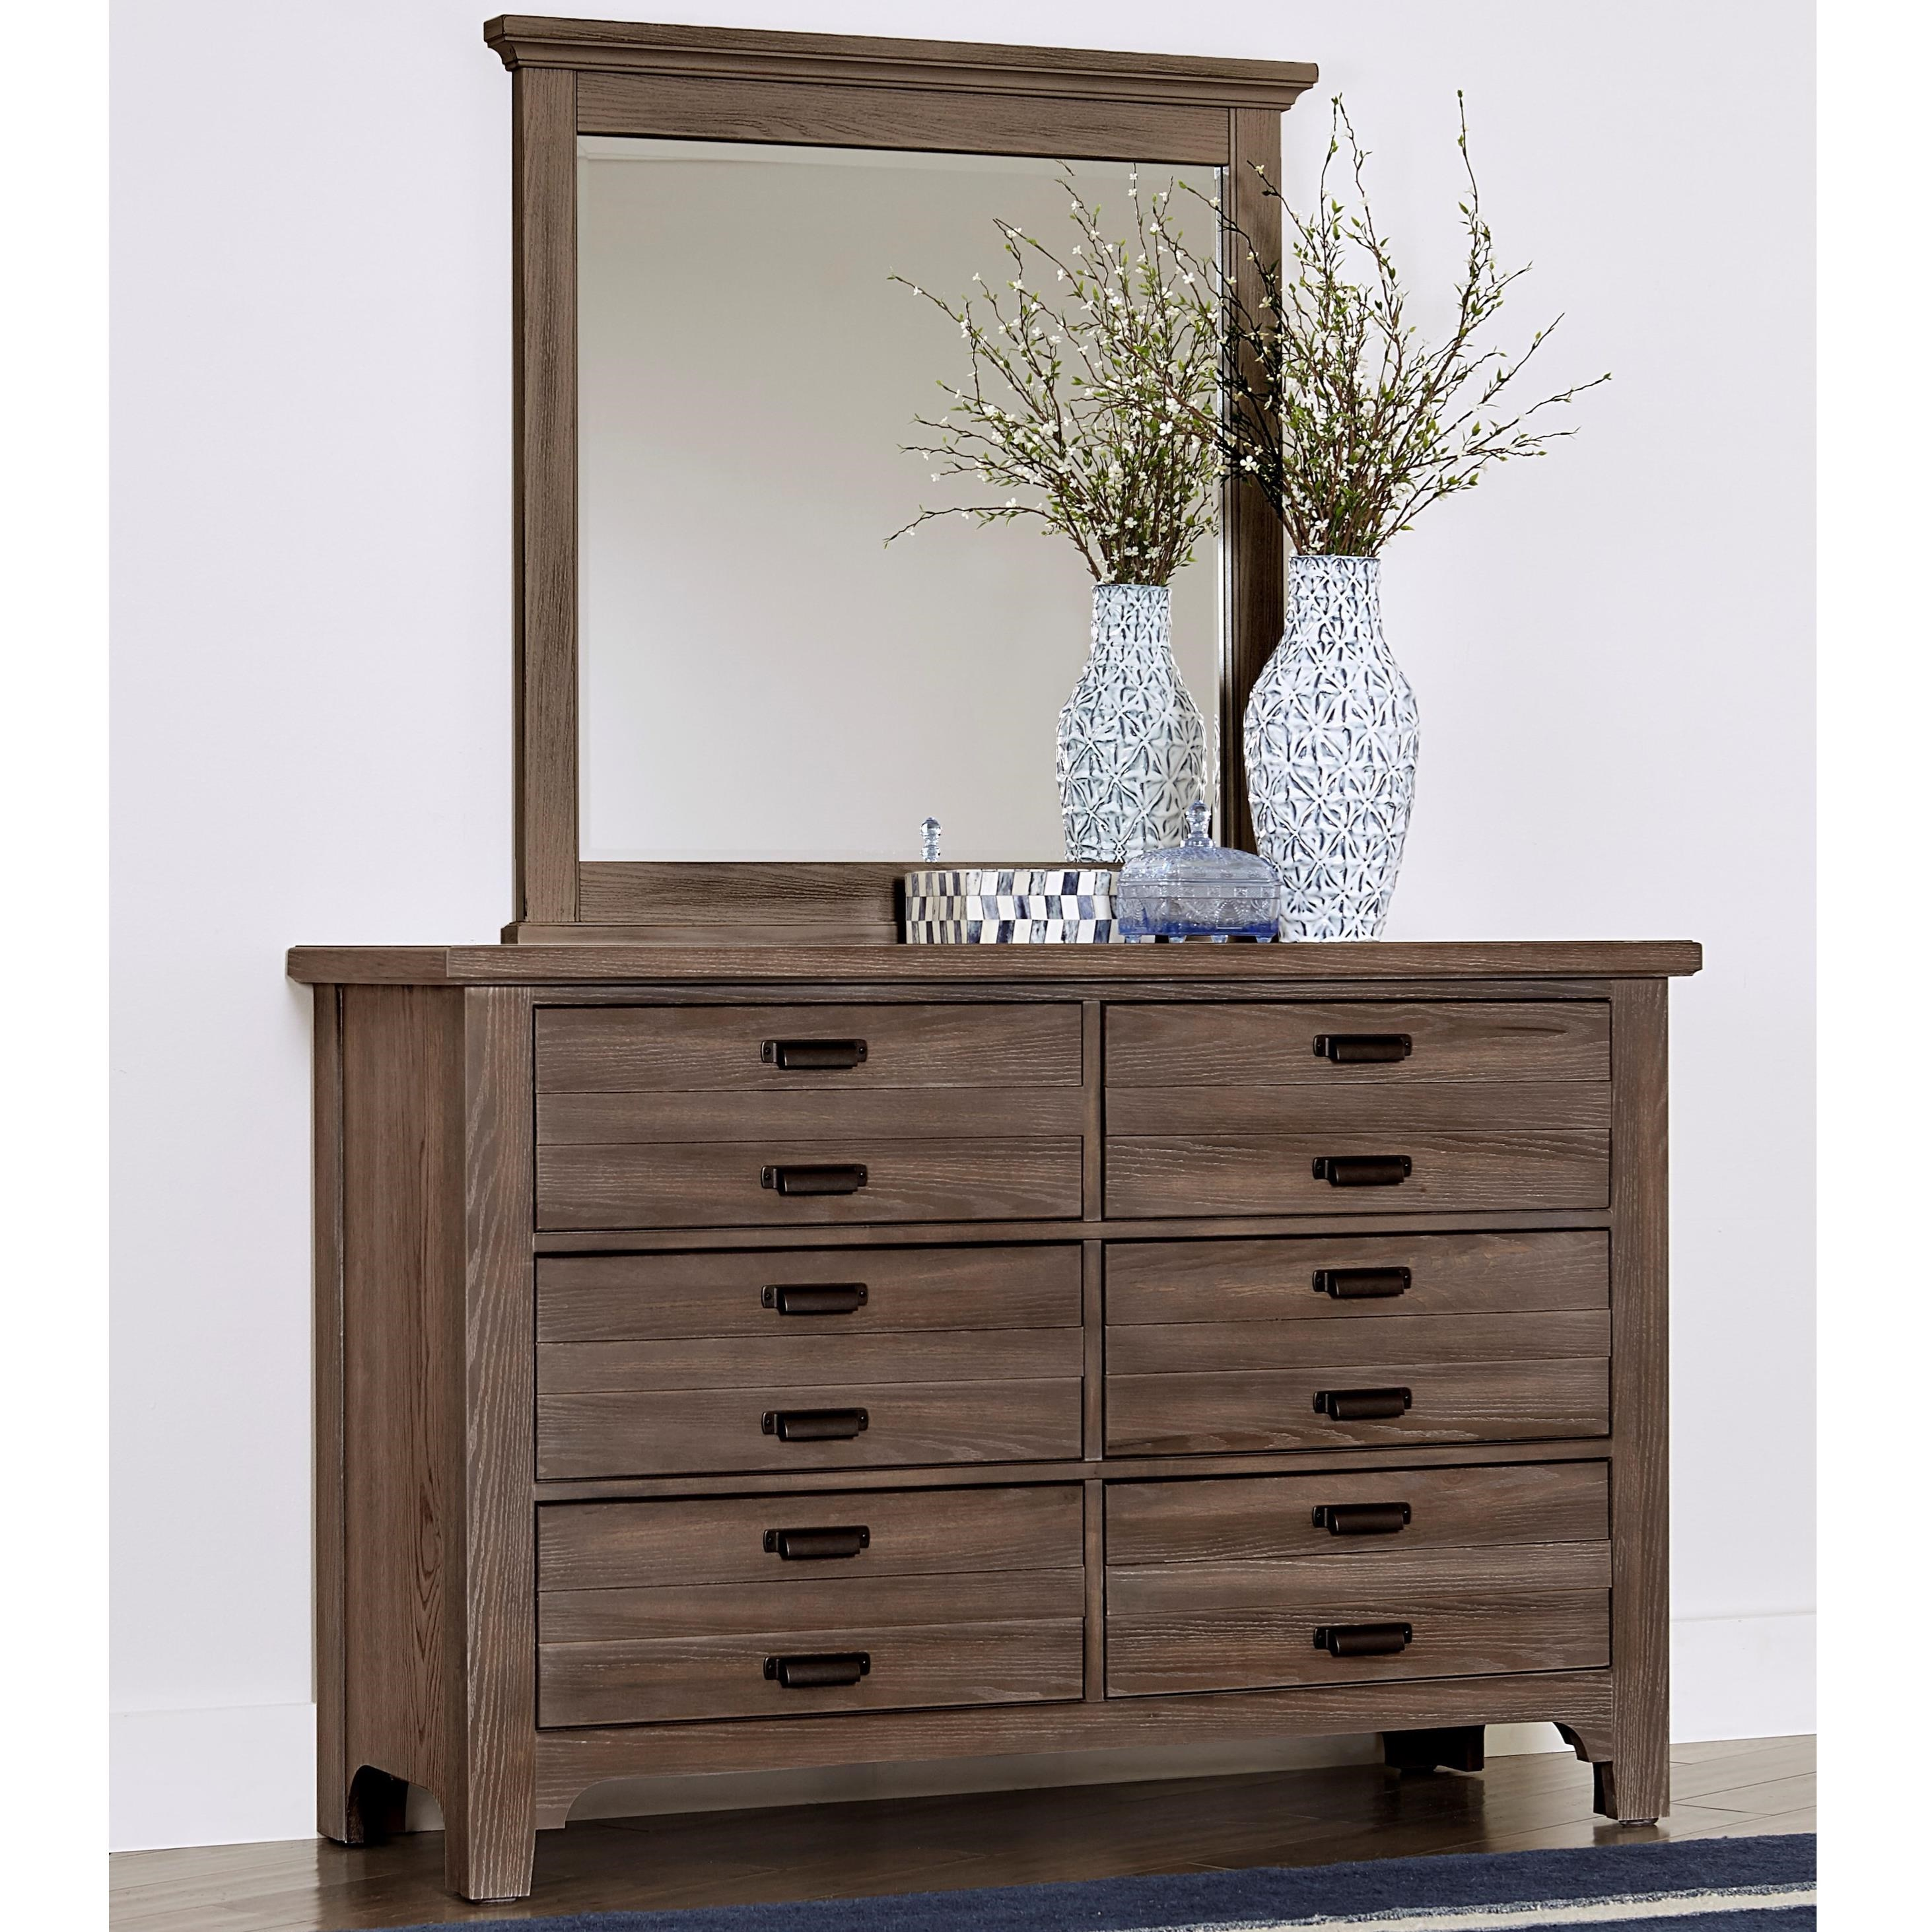 Bungalow Double Dresser & Small Landscape Mirror by Vaughan-Bassett at Crowley Furniture & Mattress